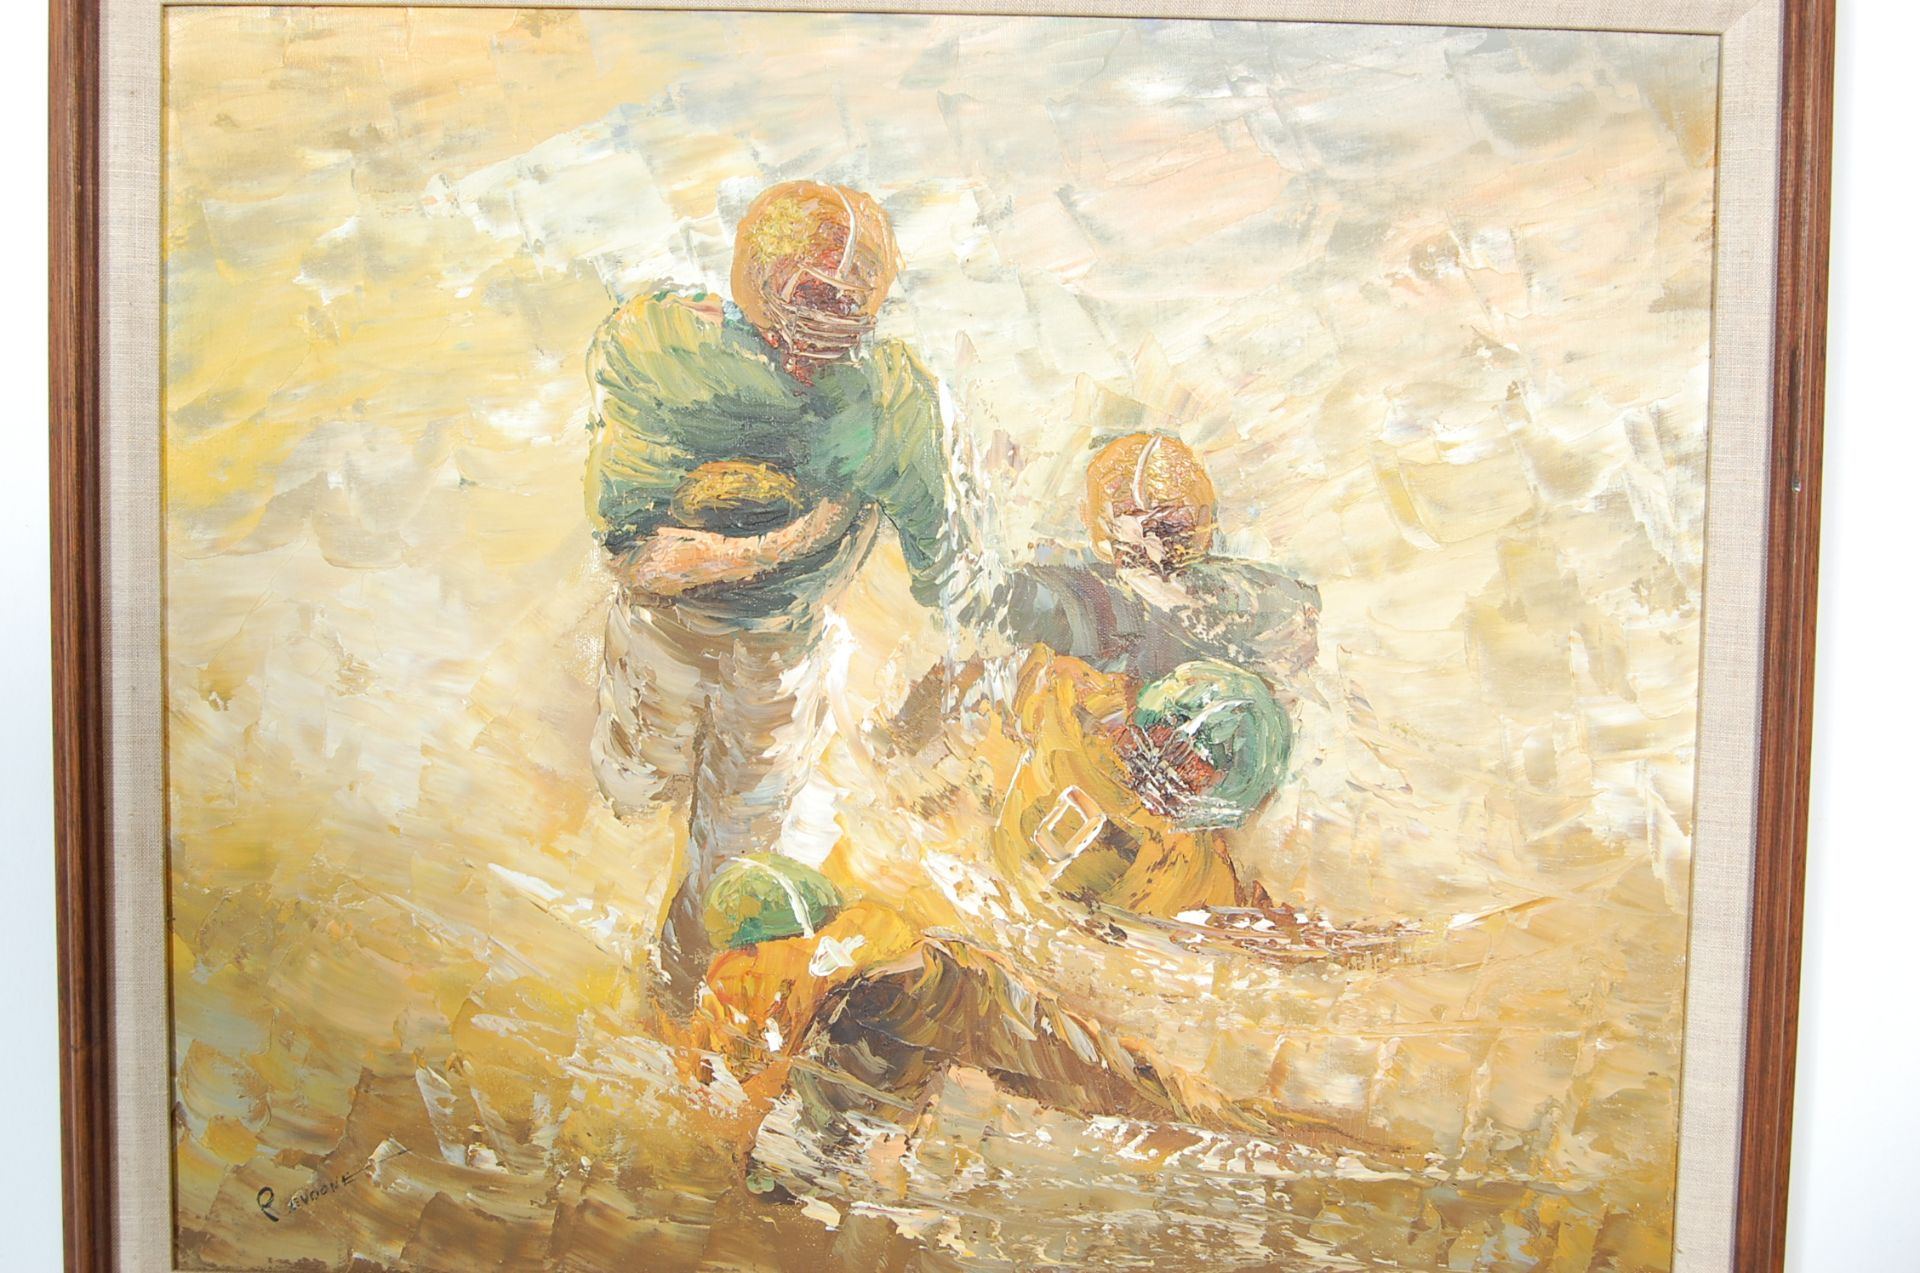 AMERICAN FOOTBALL OIL ON CANVAS PALETTE KNIFE PAINTING - Image 2 of 6